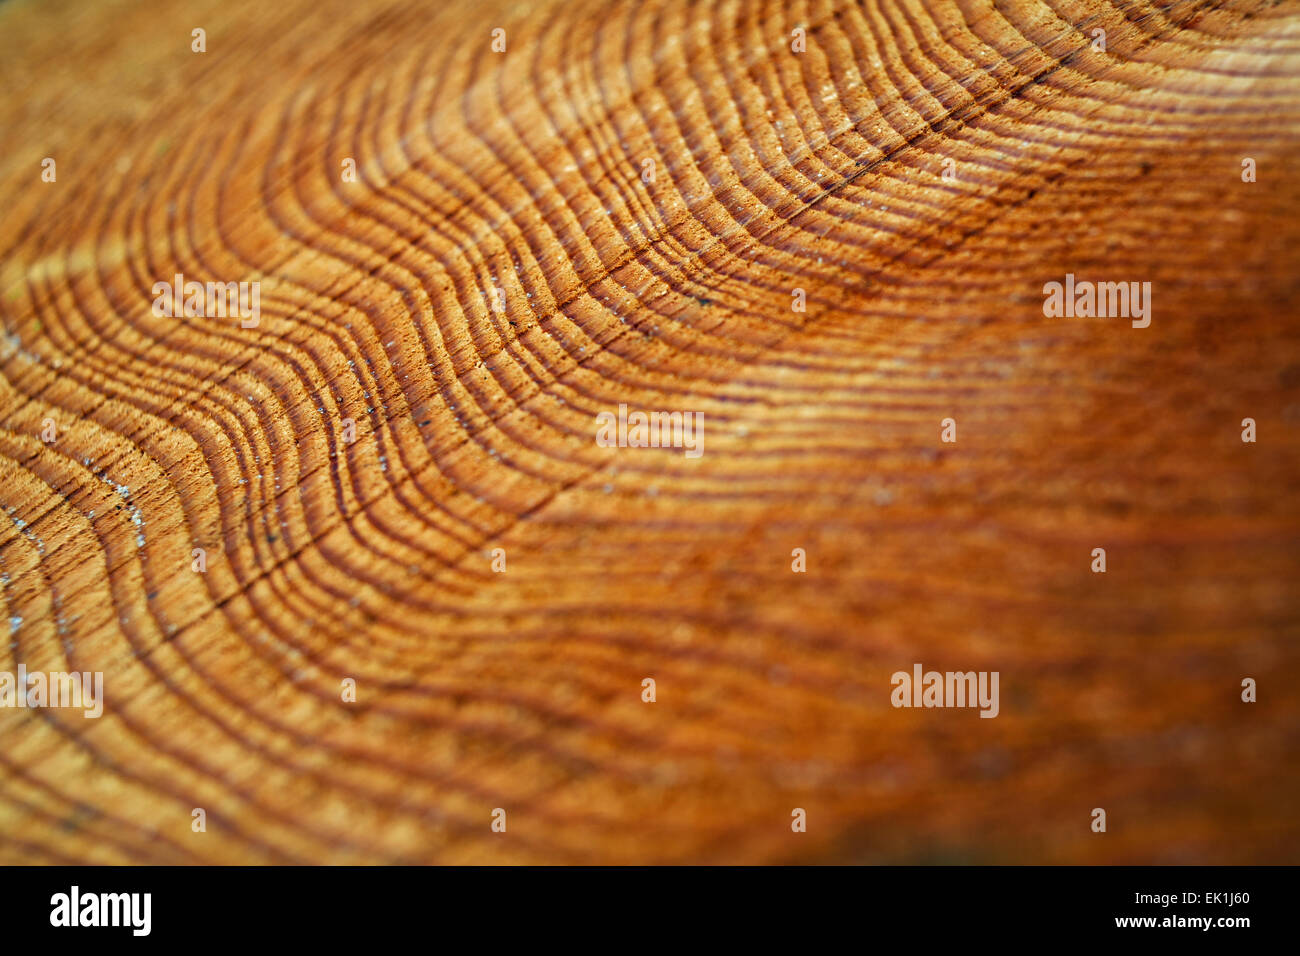 Growth rings from a felled pine tree. - Stock Image